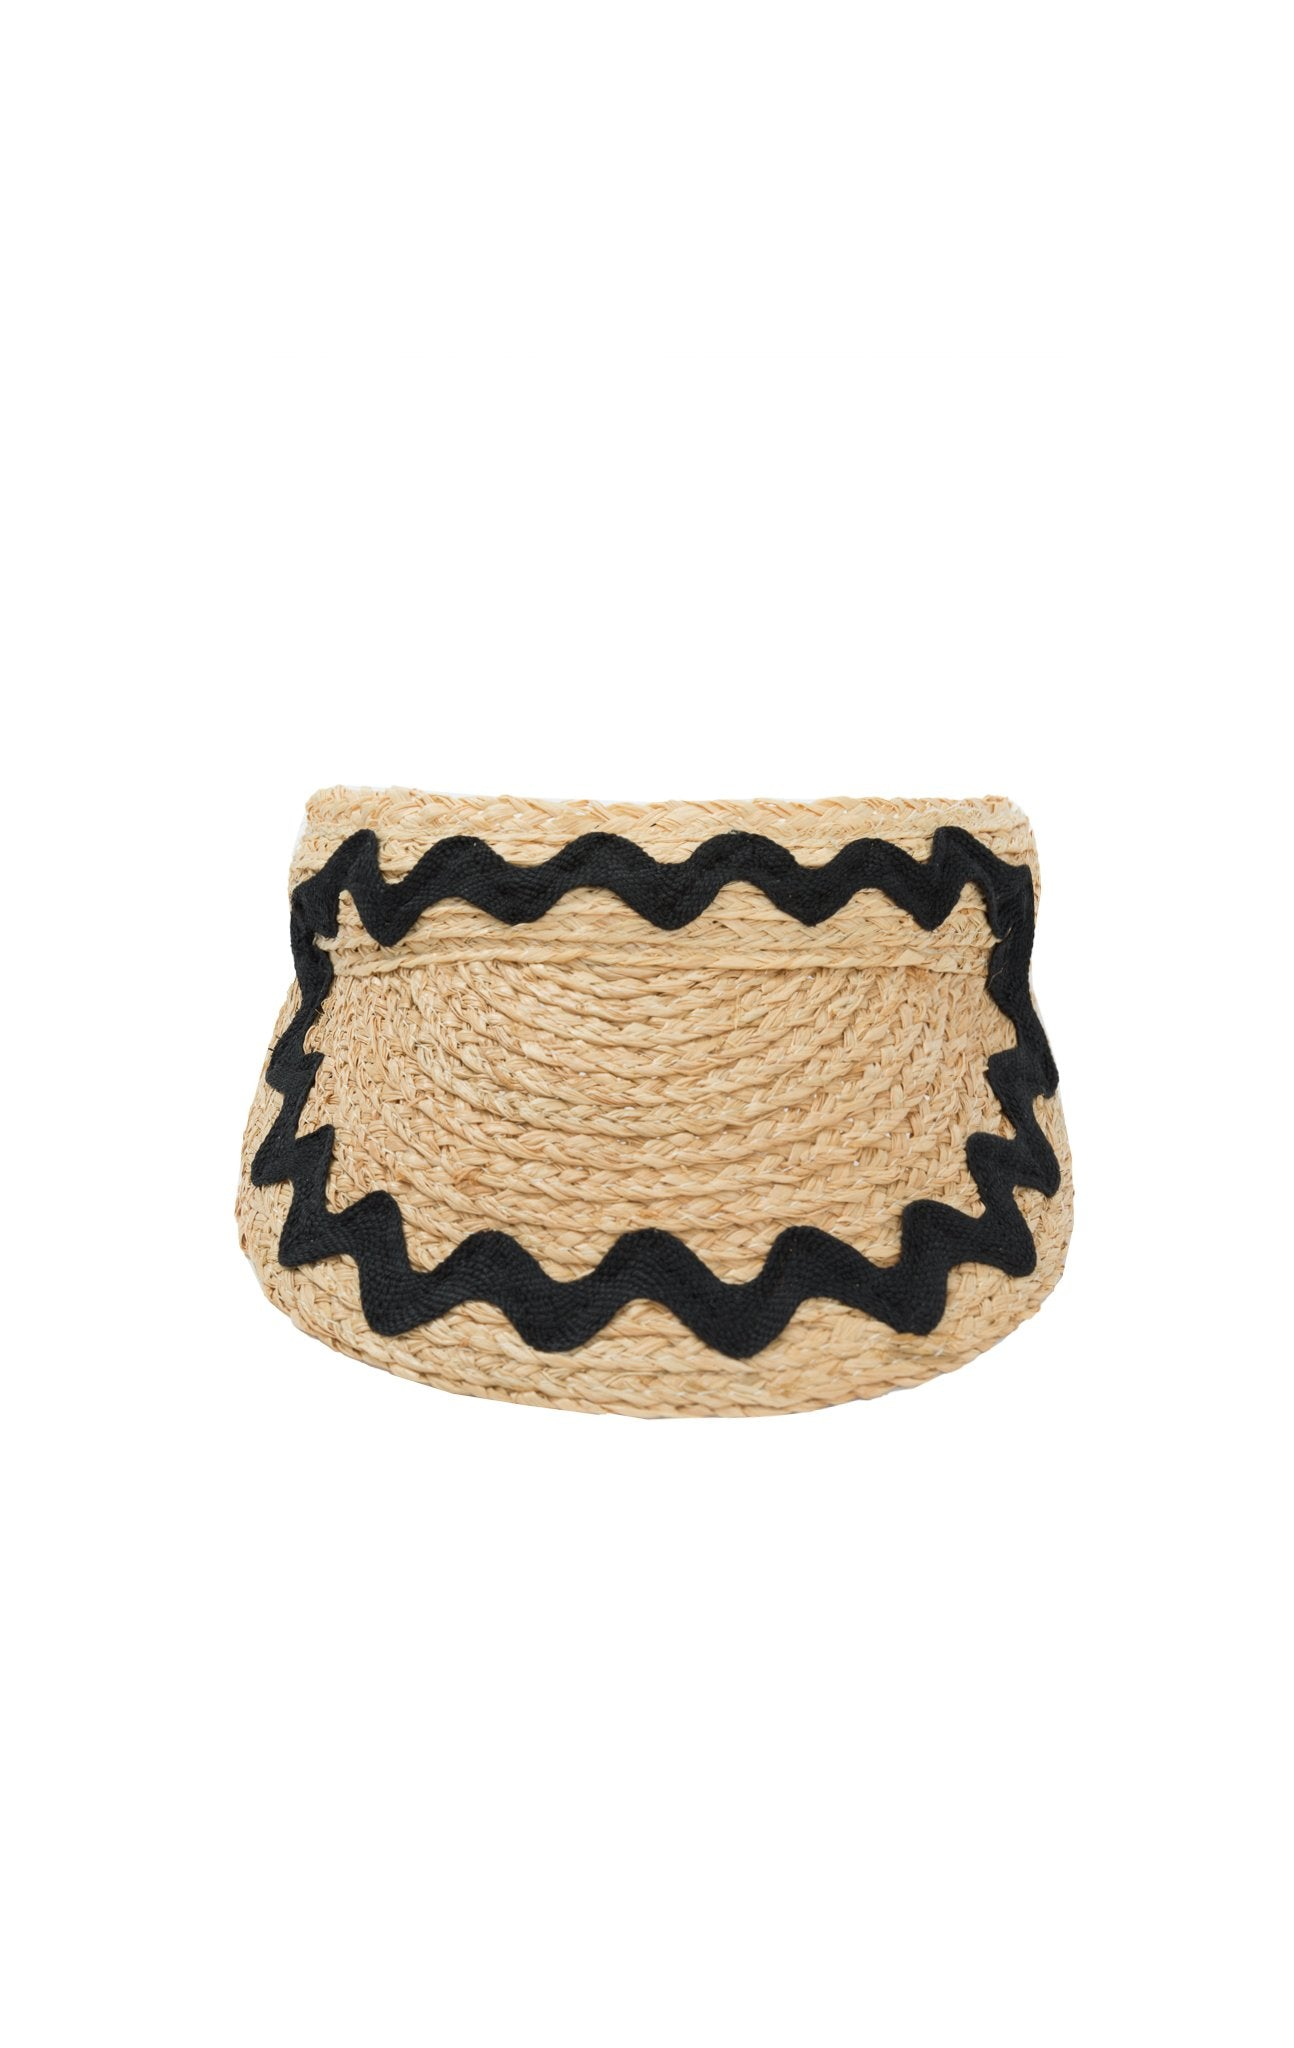 Raffia Visor in Natural/Black